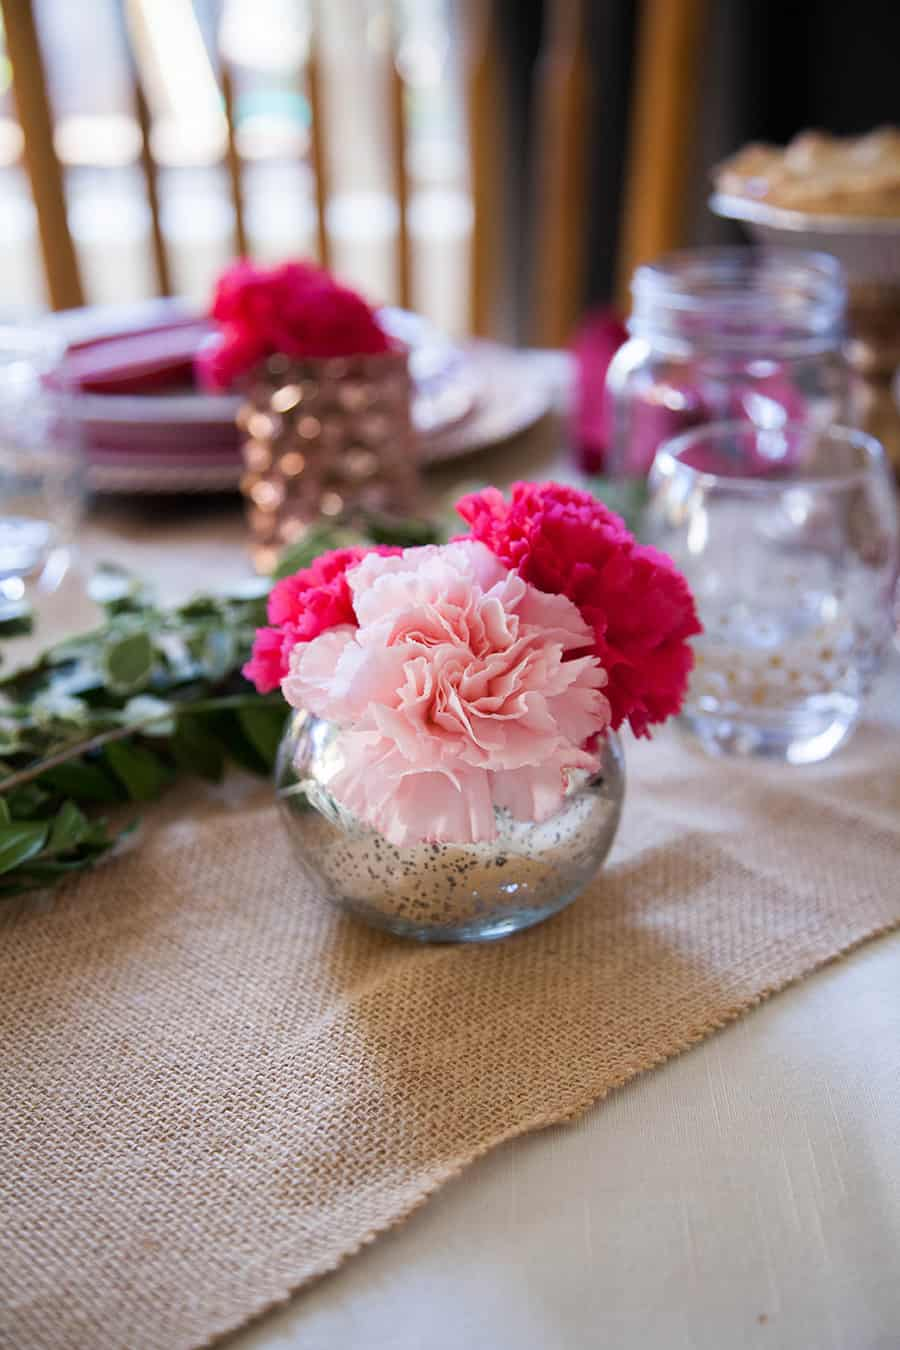 Looking for an easy date night in for Valentine?s Day this year? This easy tablescape is the perfect way to wow your sweetheart this year. Plan a gorgeous tablescape with stacked plates of different colors, mixed metals and fresh carnations for a stunning look! valentines day ideas | date night at home | date night | valentines day dinner | valentines day table | valentine's day decor | valentines ideas | steak dinner ideas